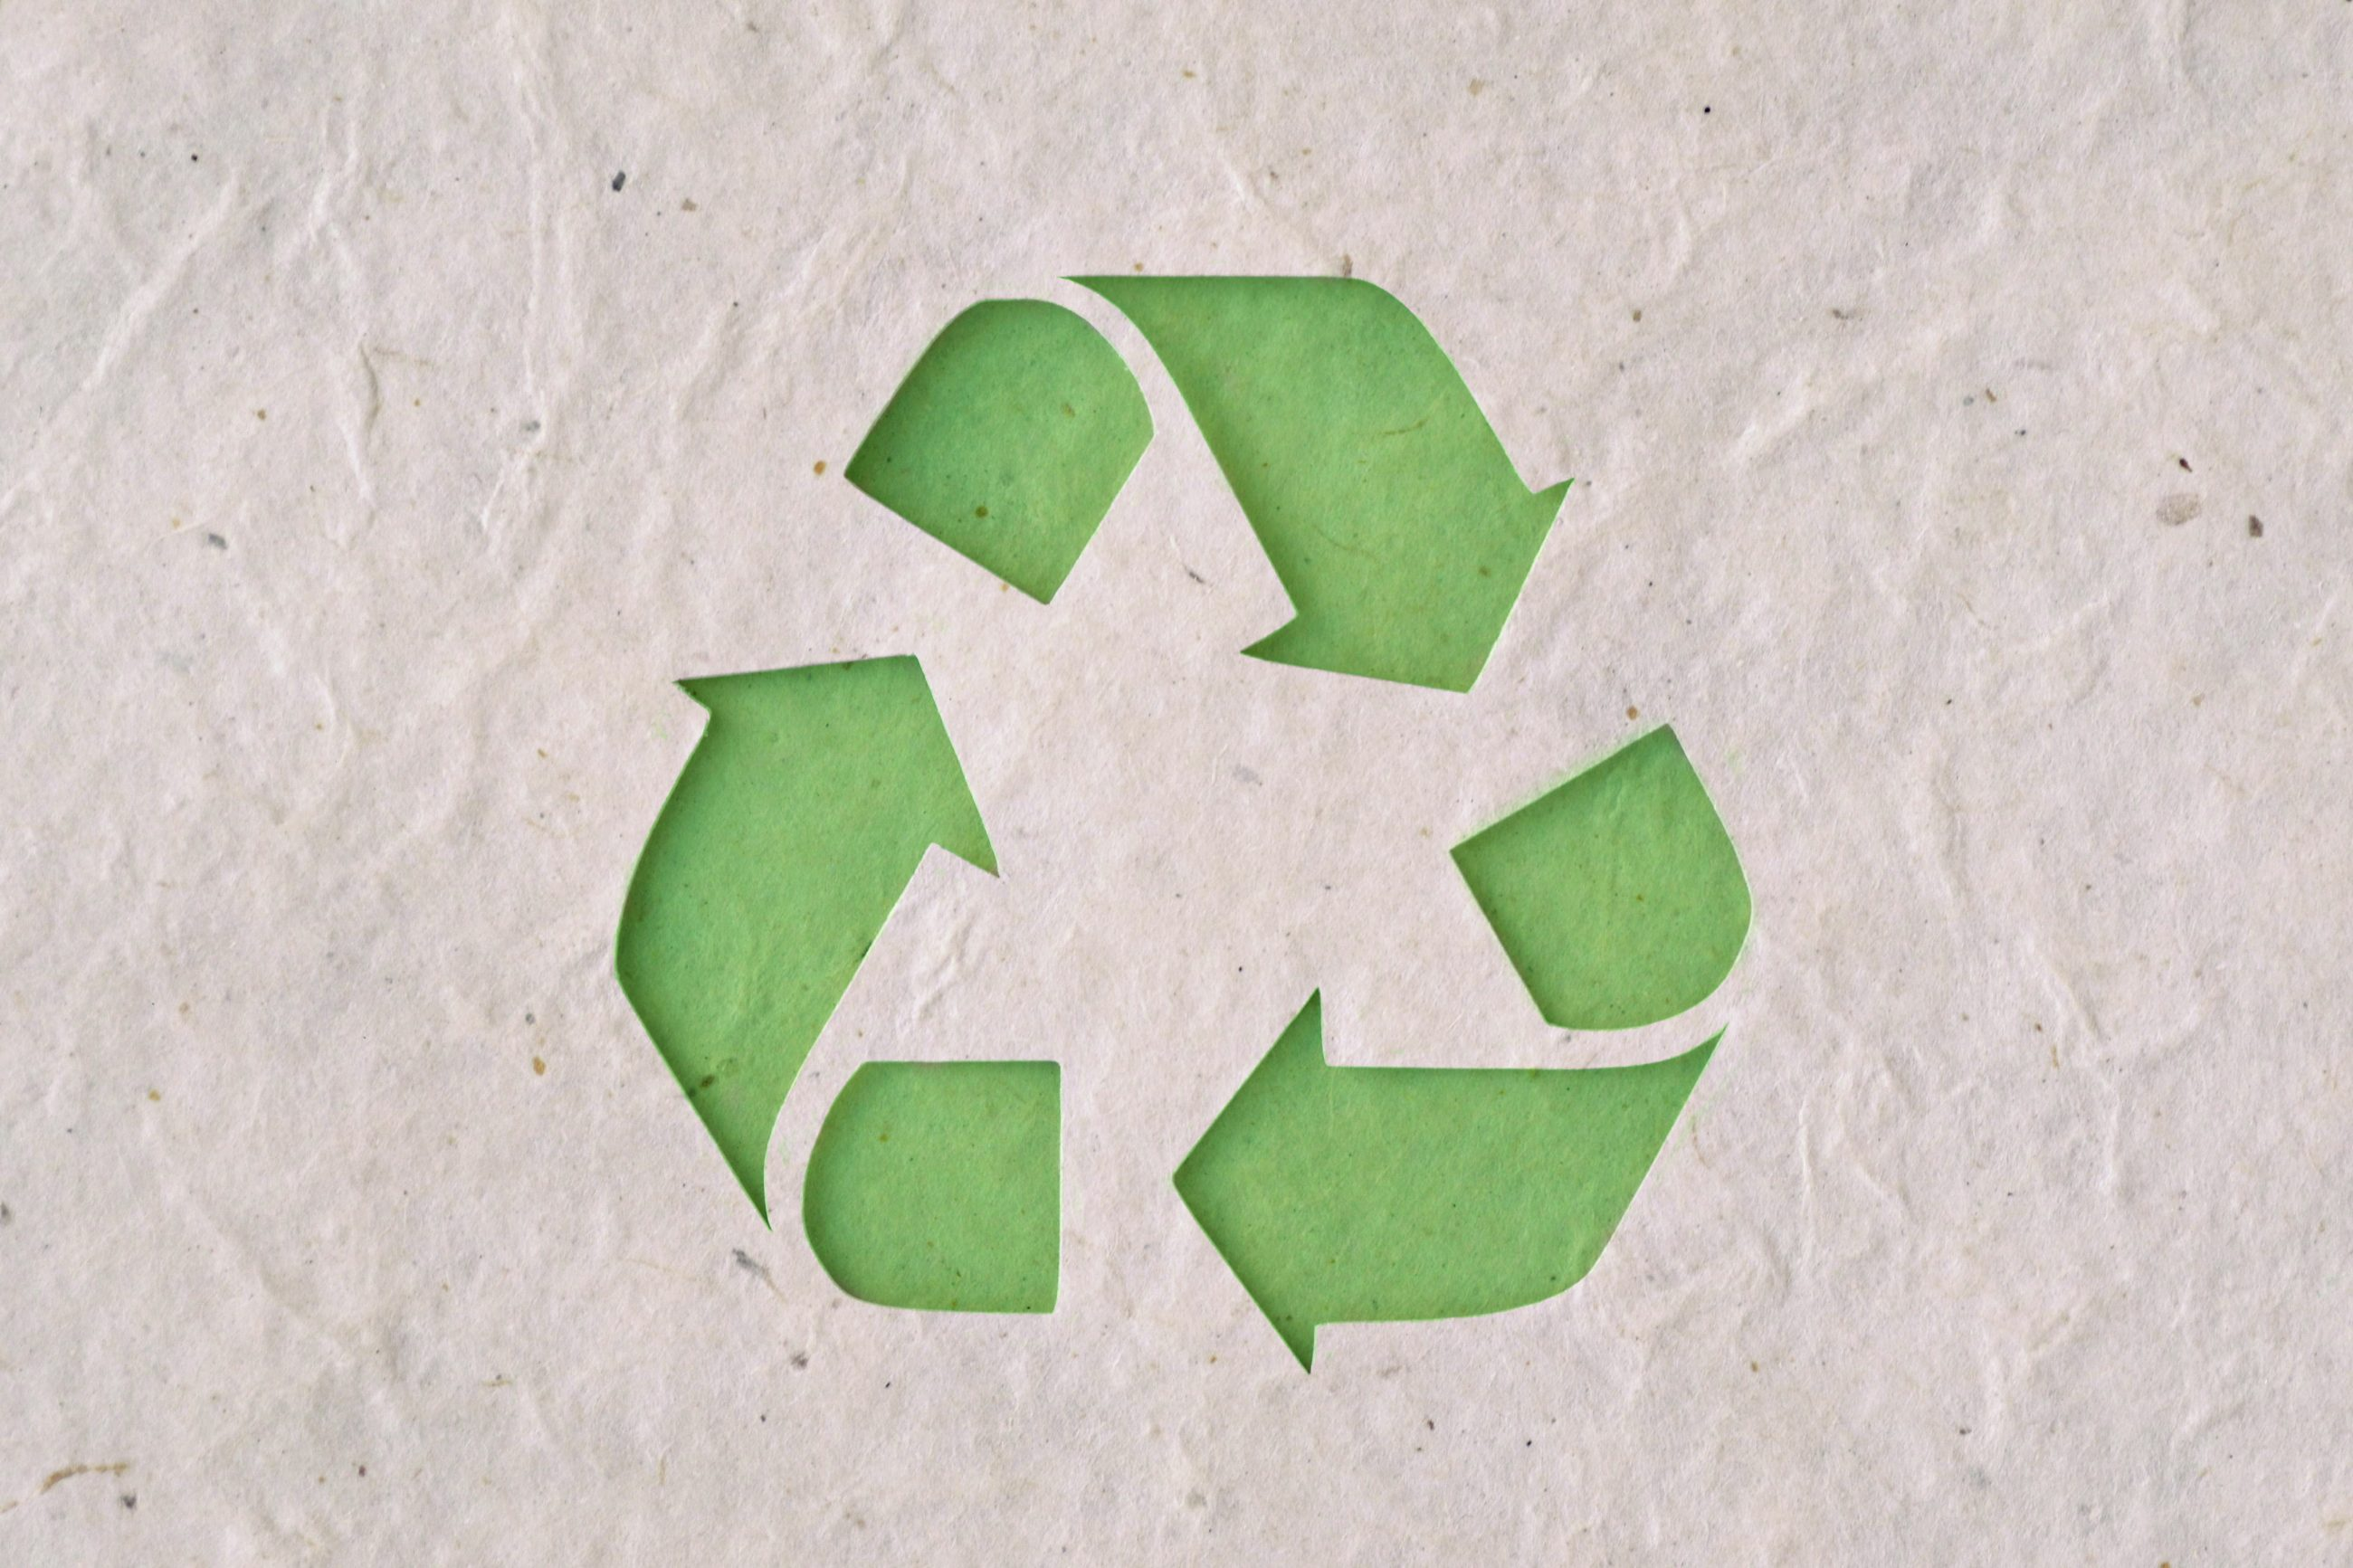 Recycling symbol on Paper